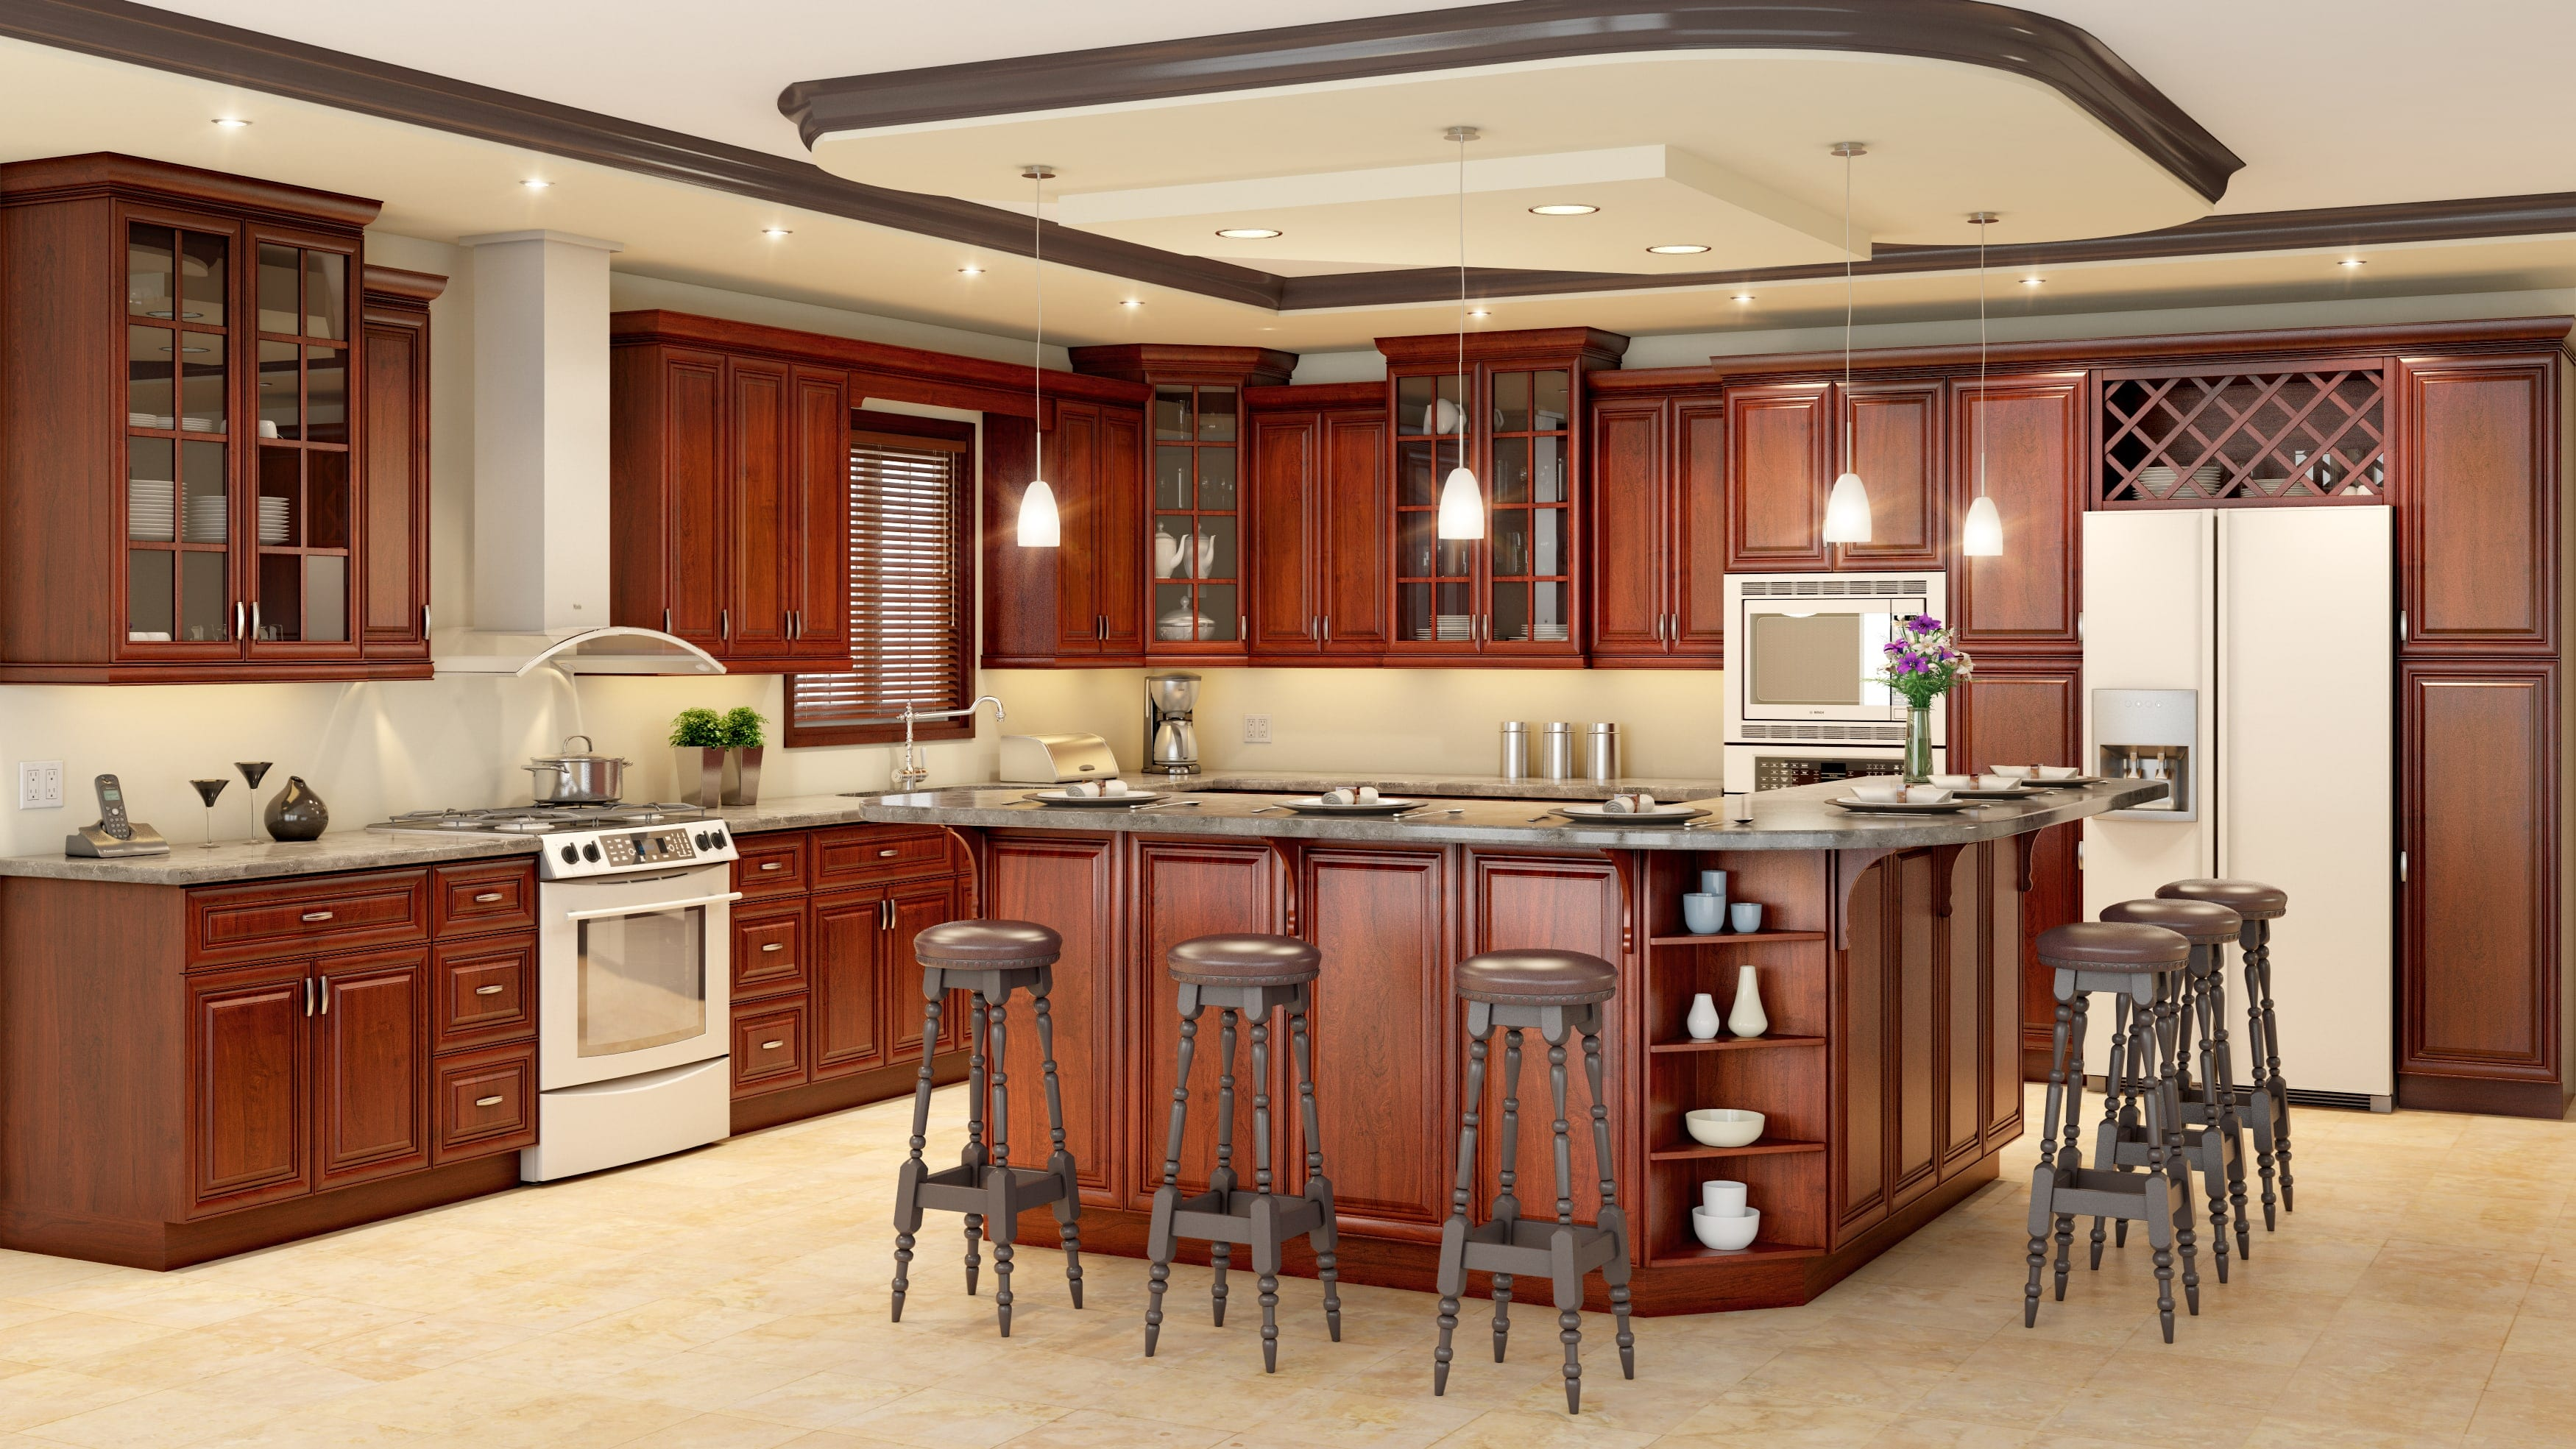 Kitchen cabinets classic style cabinets for kitchens for Classic kitchen cabinets